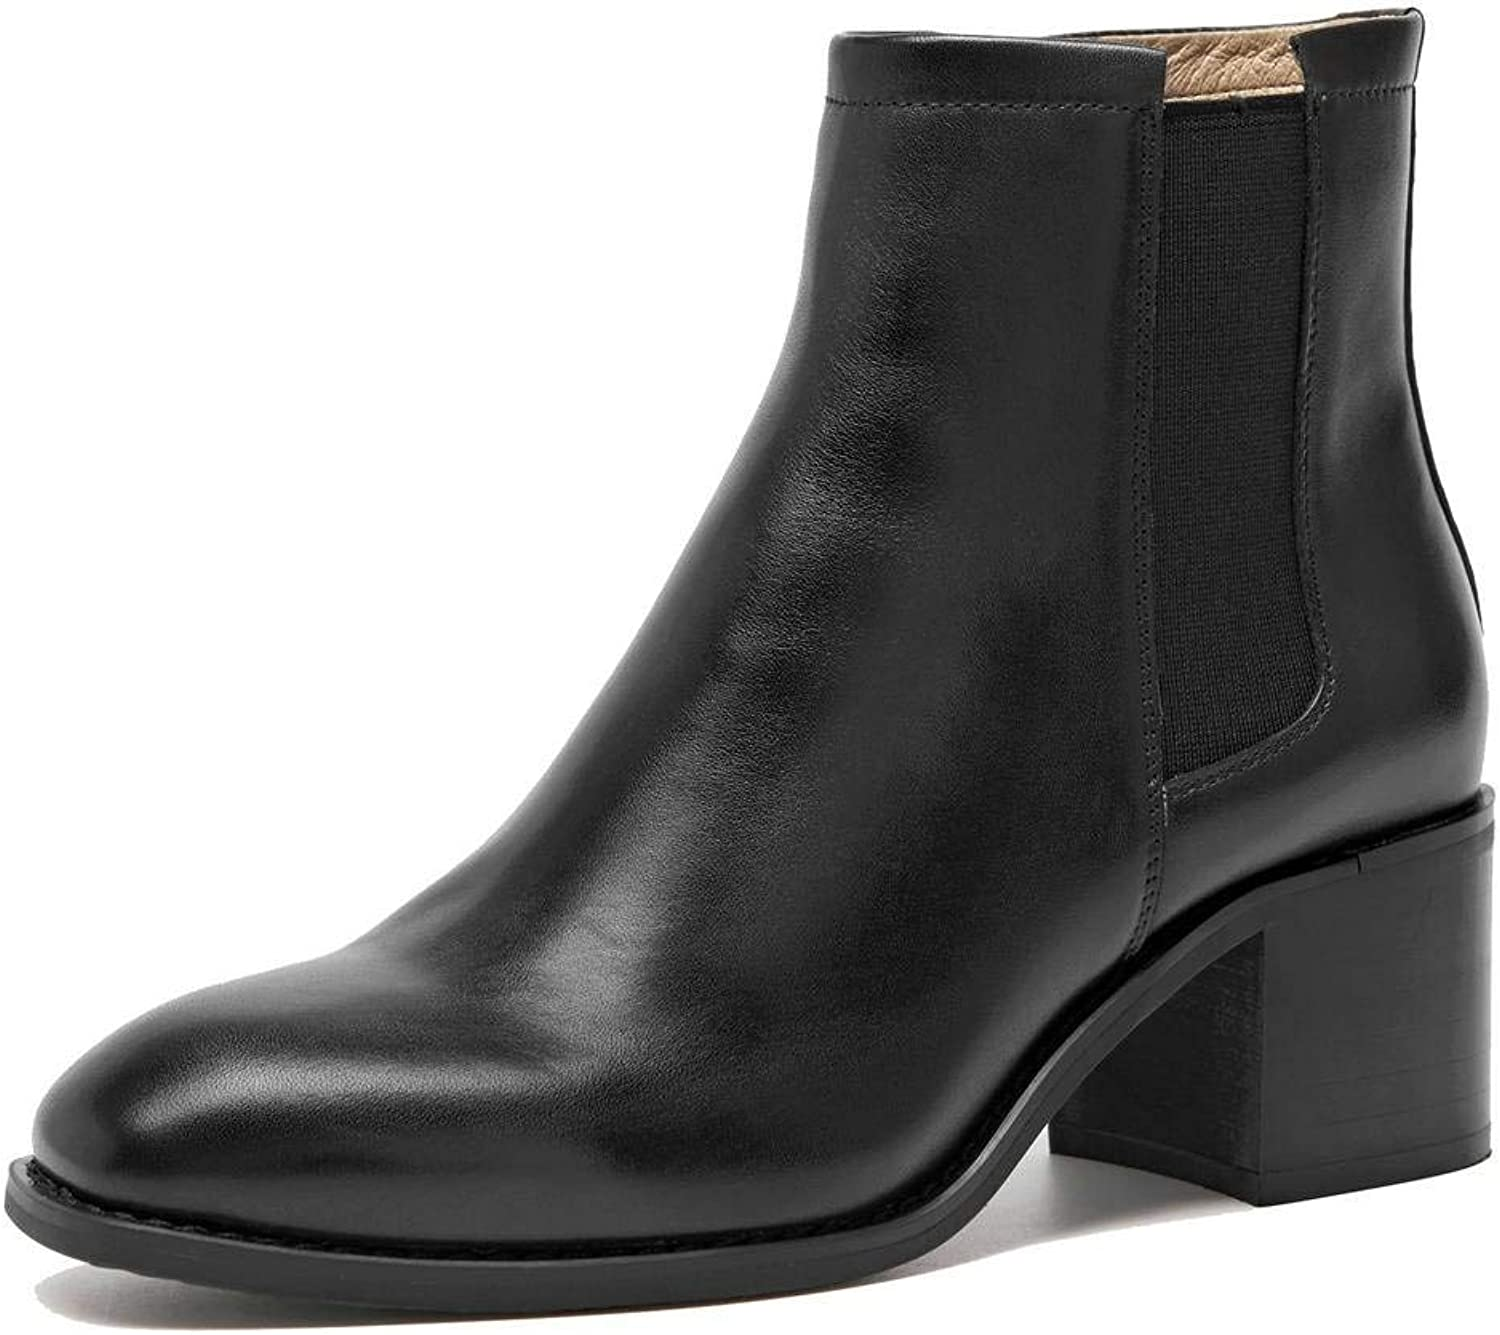 U-lite Womens Smooth Cowhide Block Heel Chelsea Ankle Boots, Pigskin Lining, Crushioned Footbed with Side Zipper